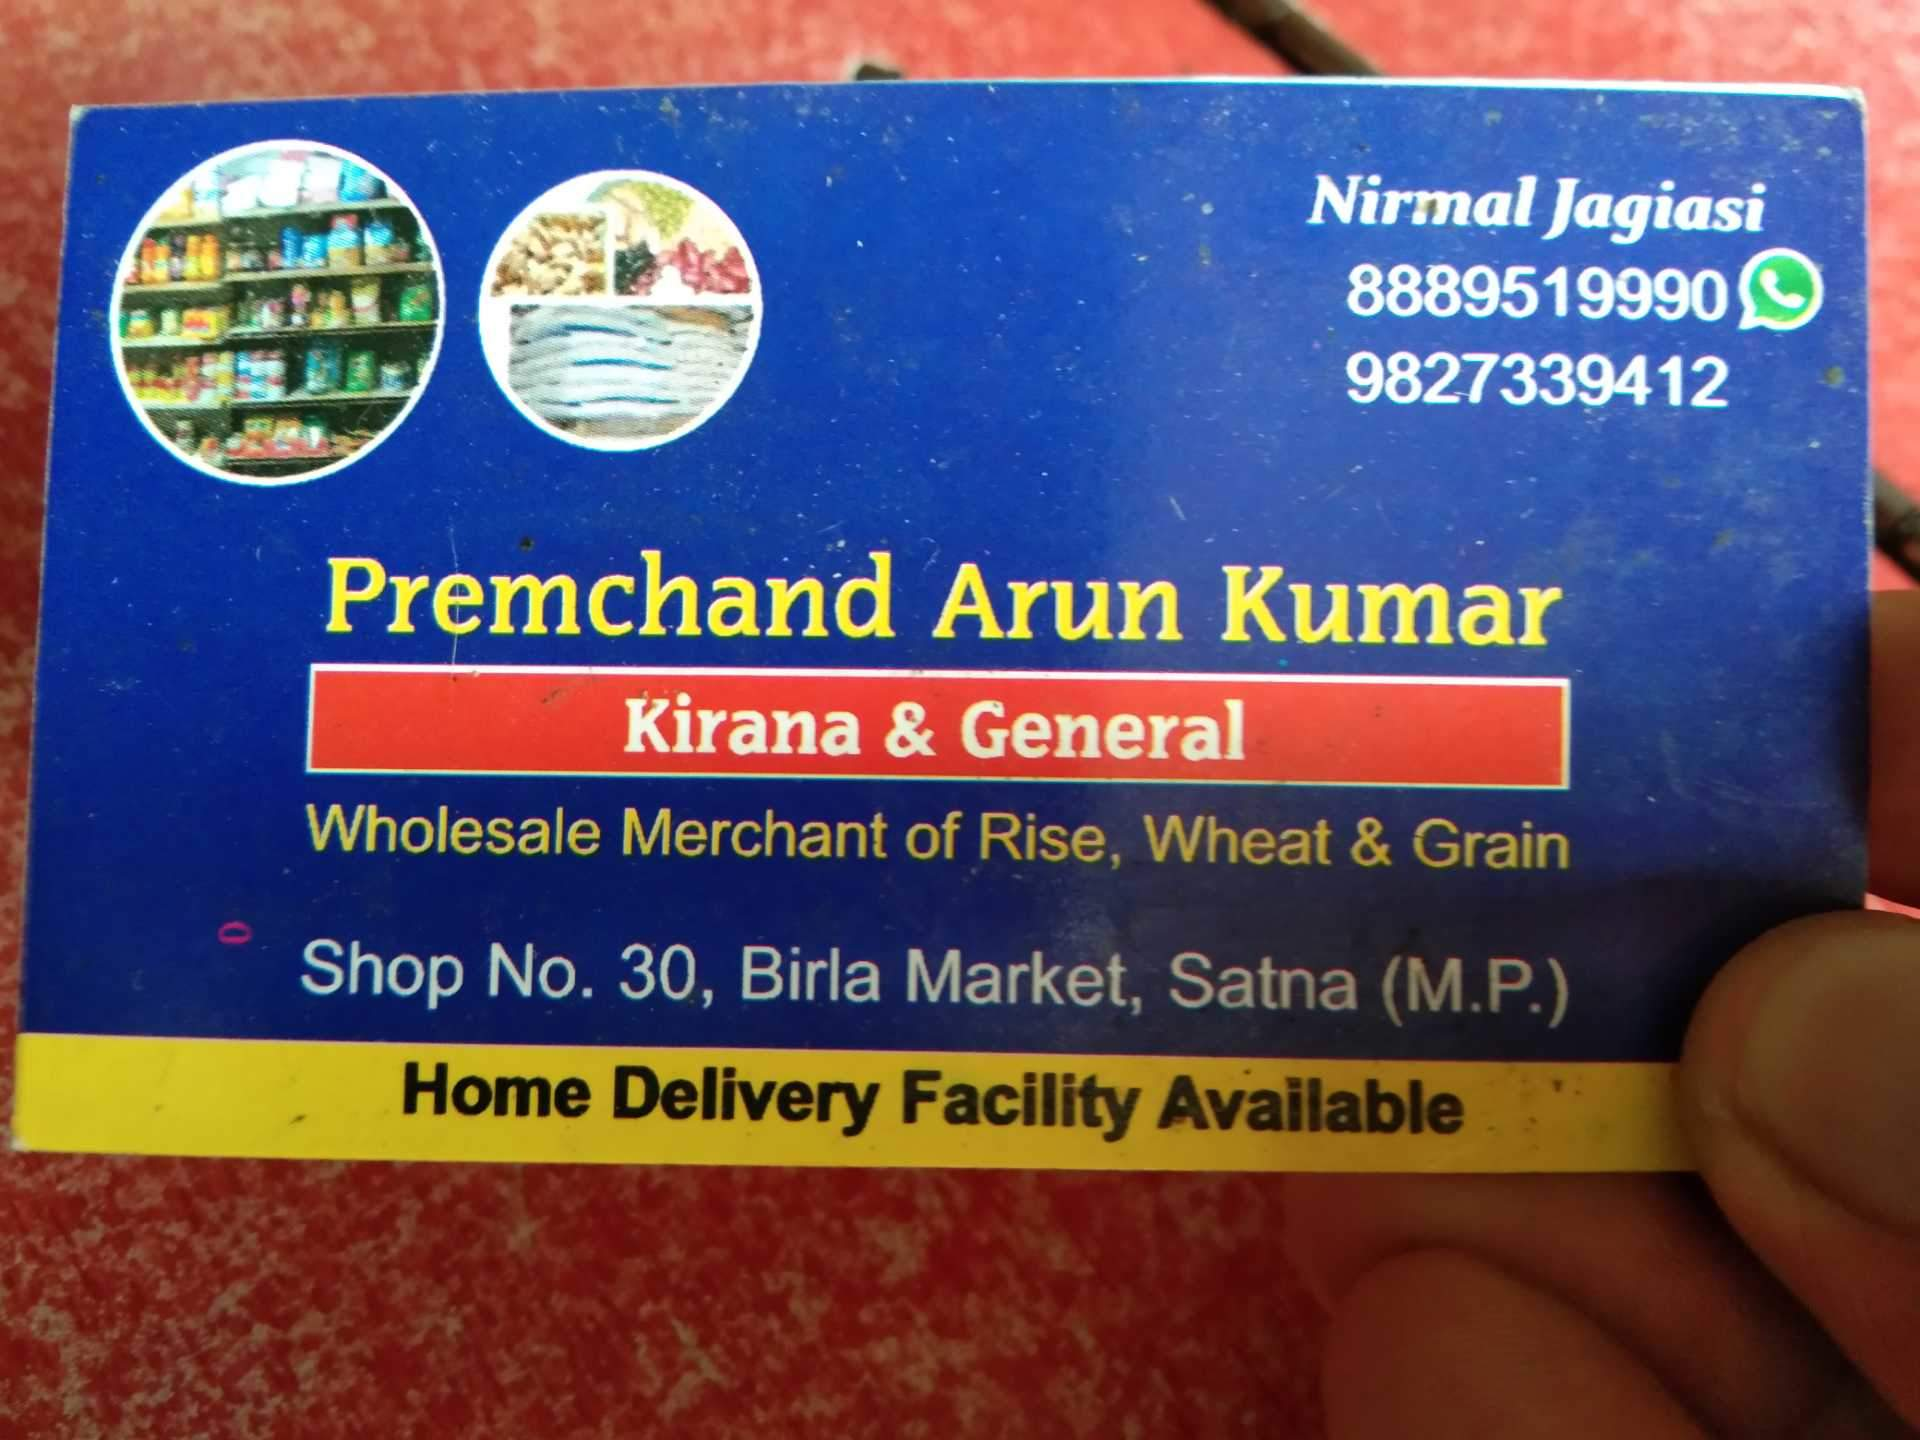 Prem Chandra Arun Kumargenral Store   Grocery Stores in Satna 1920x1440